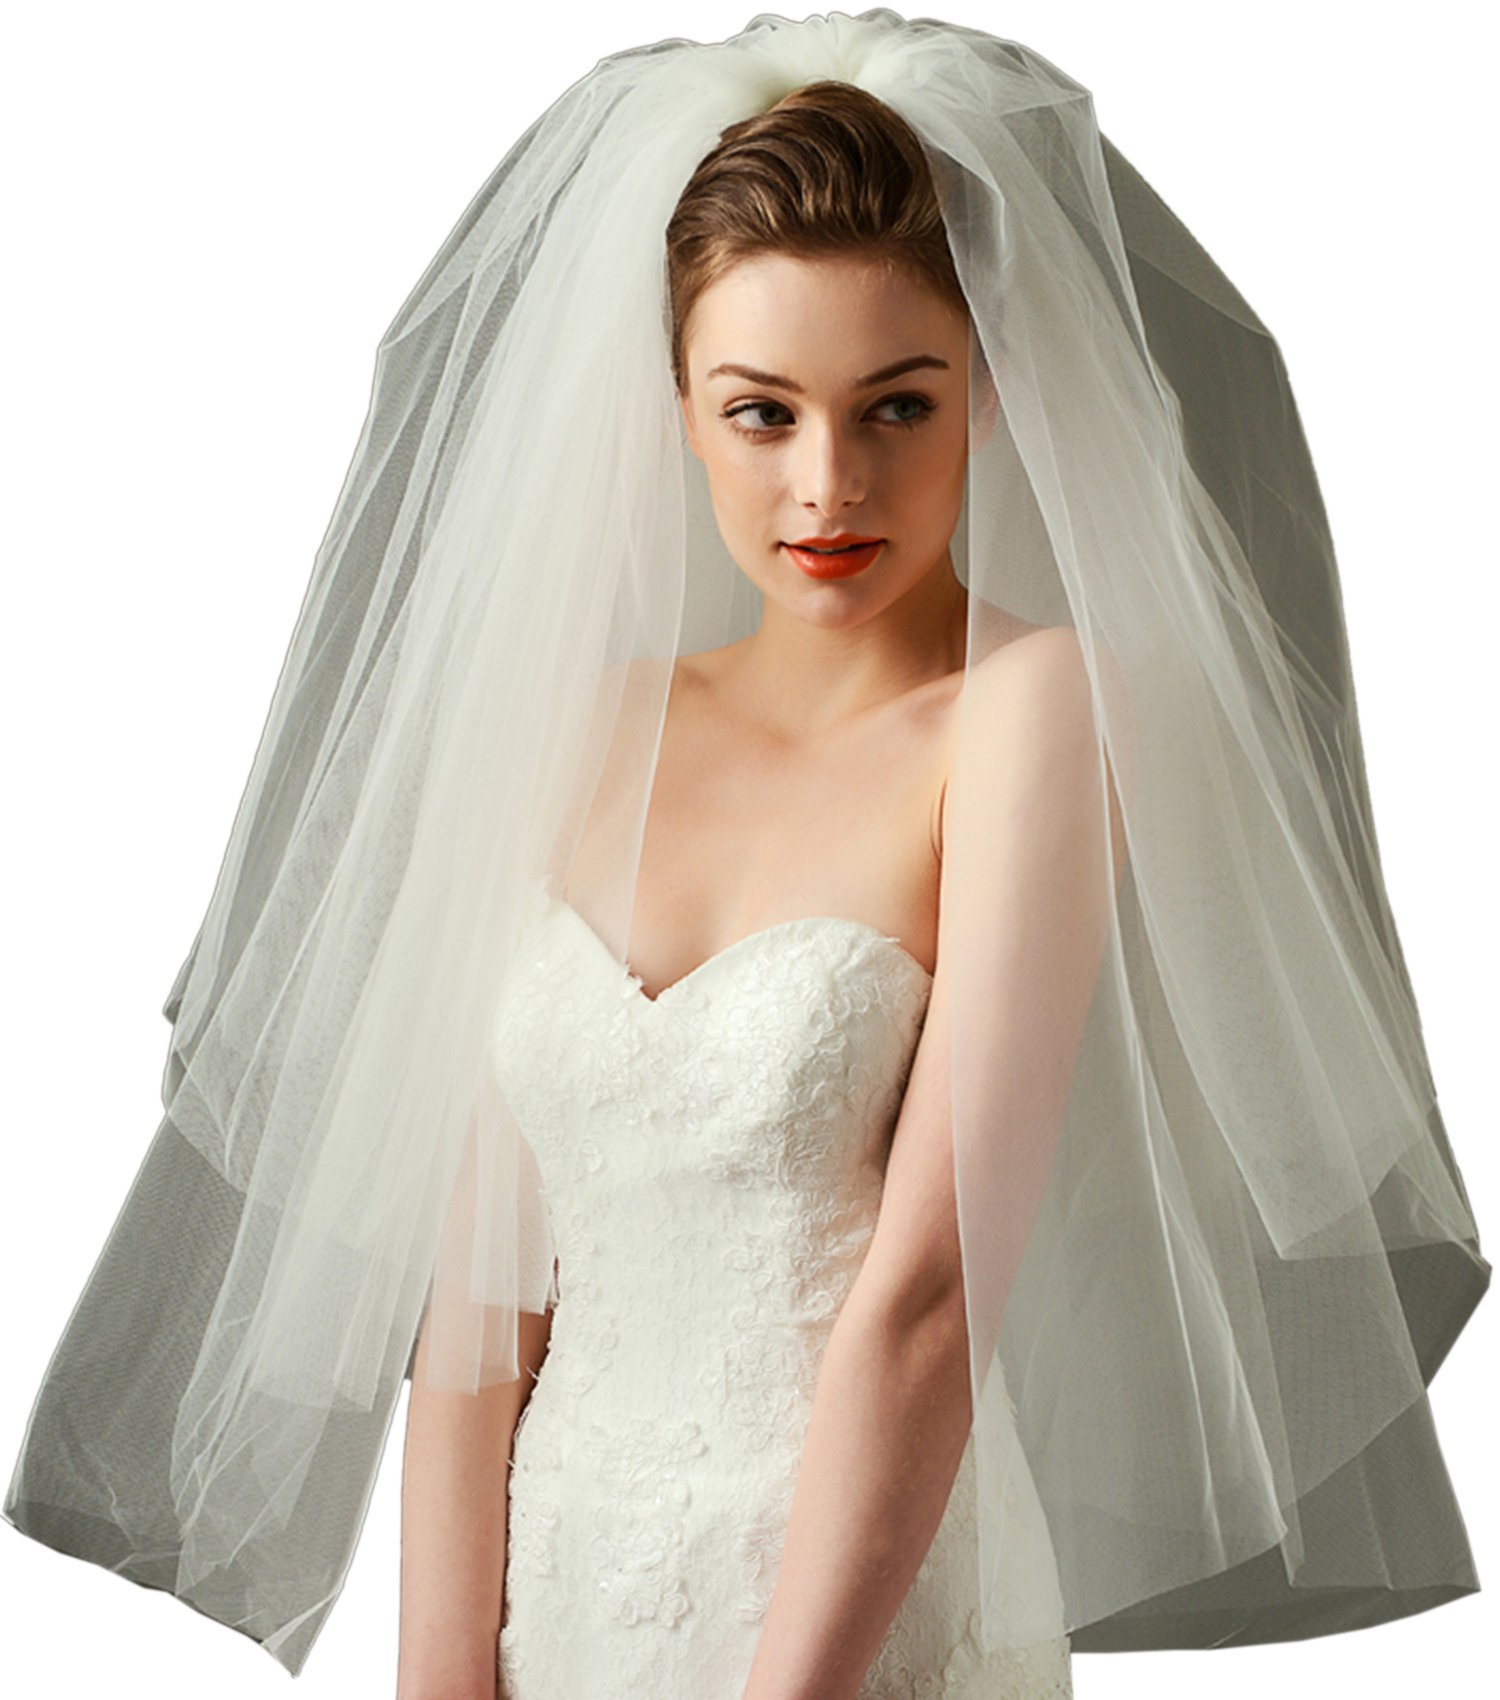 LynnBridal Wedding Veil Tulle Bubble Style Elbow Length 2 Tiers with Metal Comb Ivory